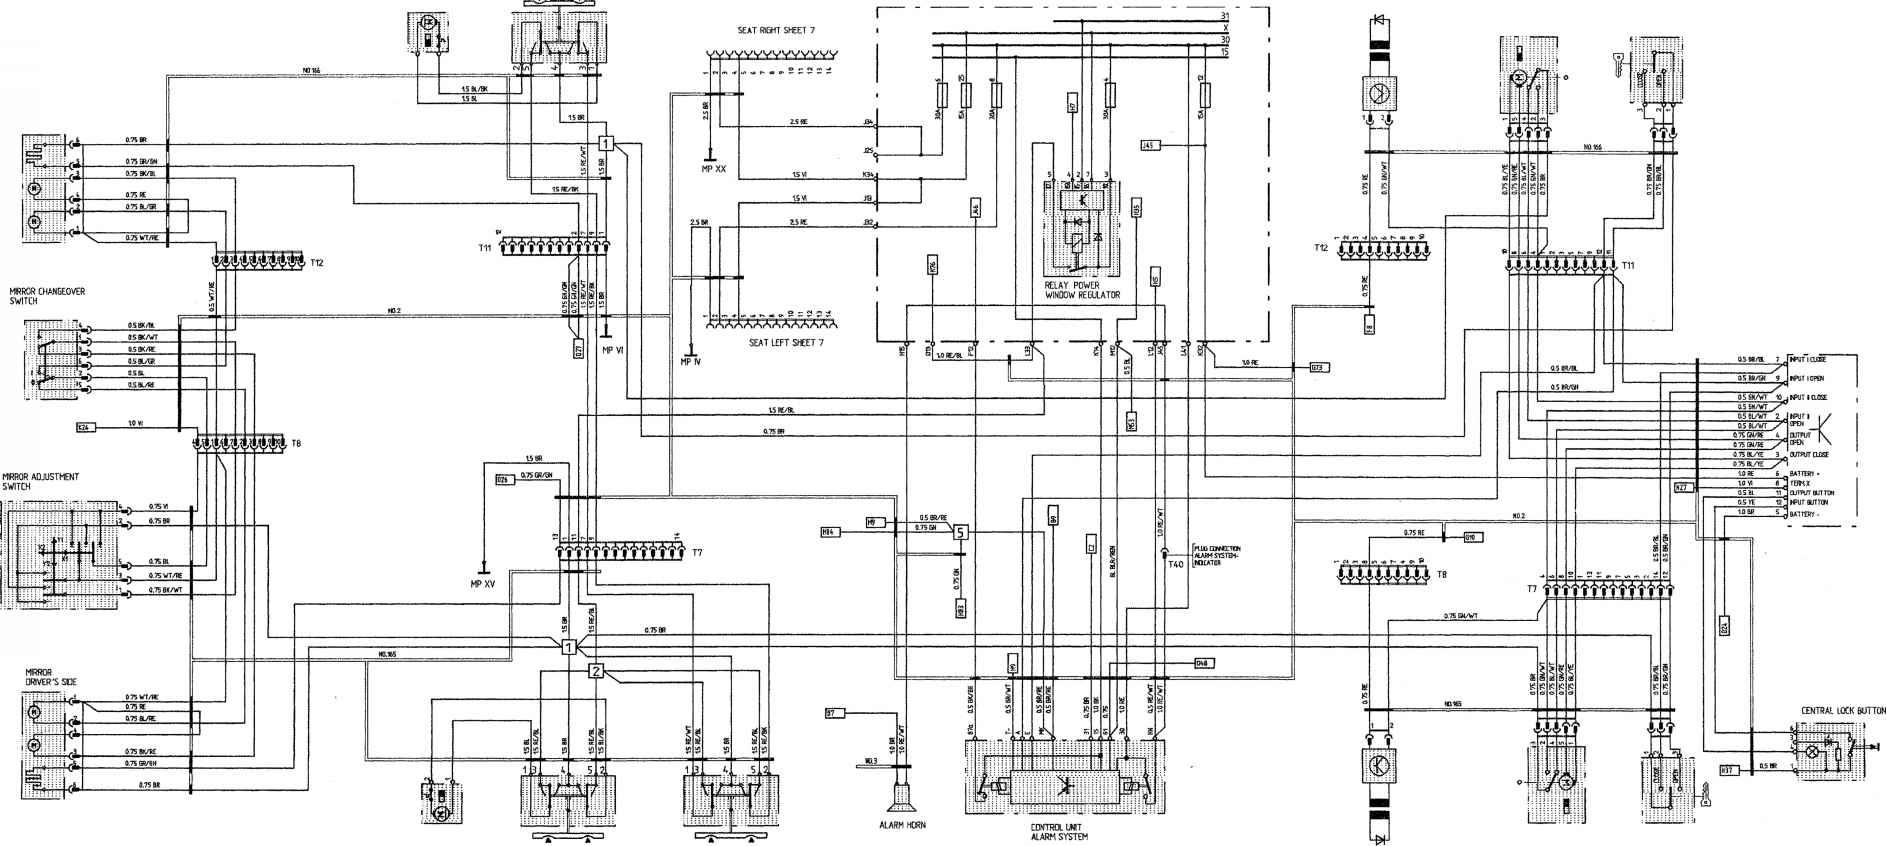 larrera 4 model 89 sheet porsche 964 911 carrera4 porsche archives car alarm circuit diagram porsche alarm wiring diagram